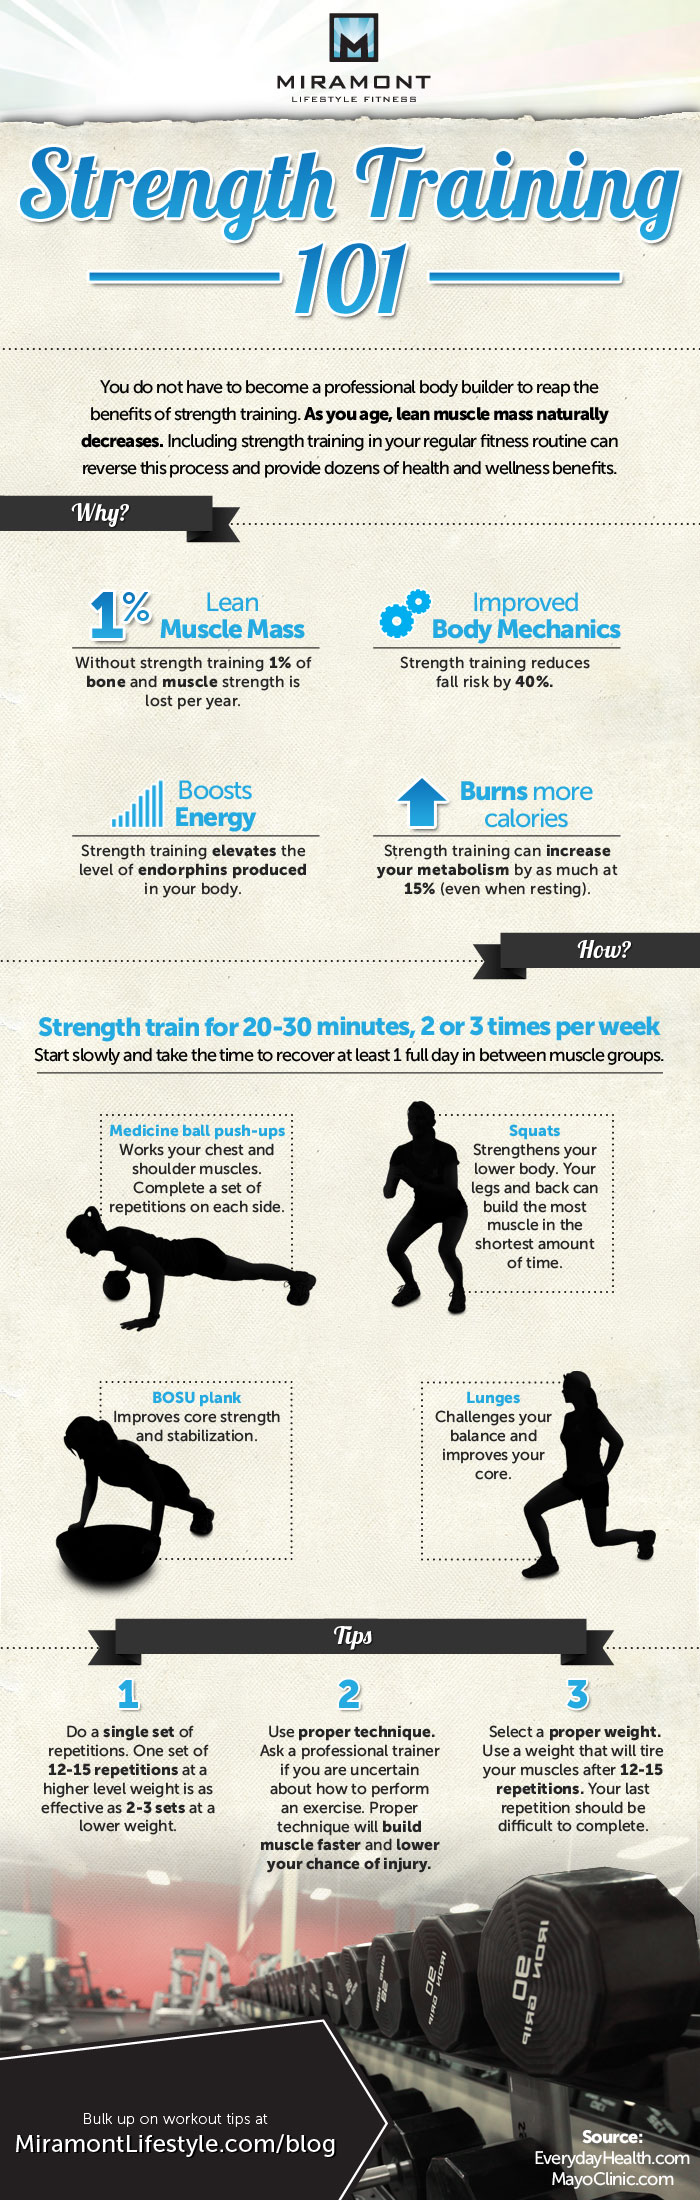 infographic12-strength-training1